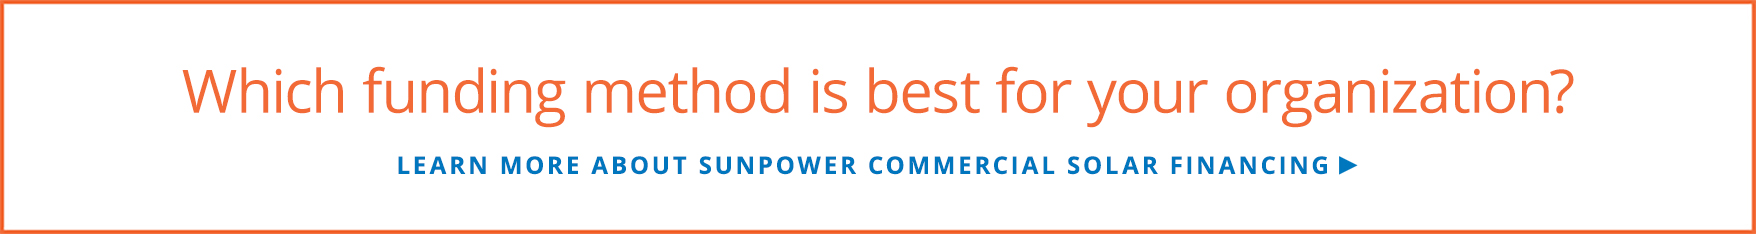 Learn more about SunPower commercial solar financing